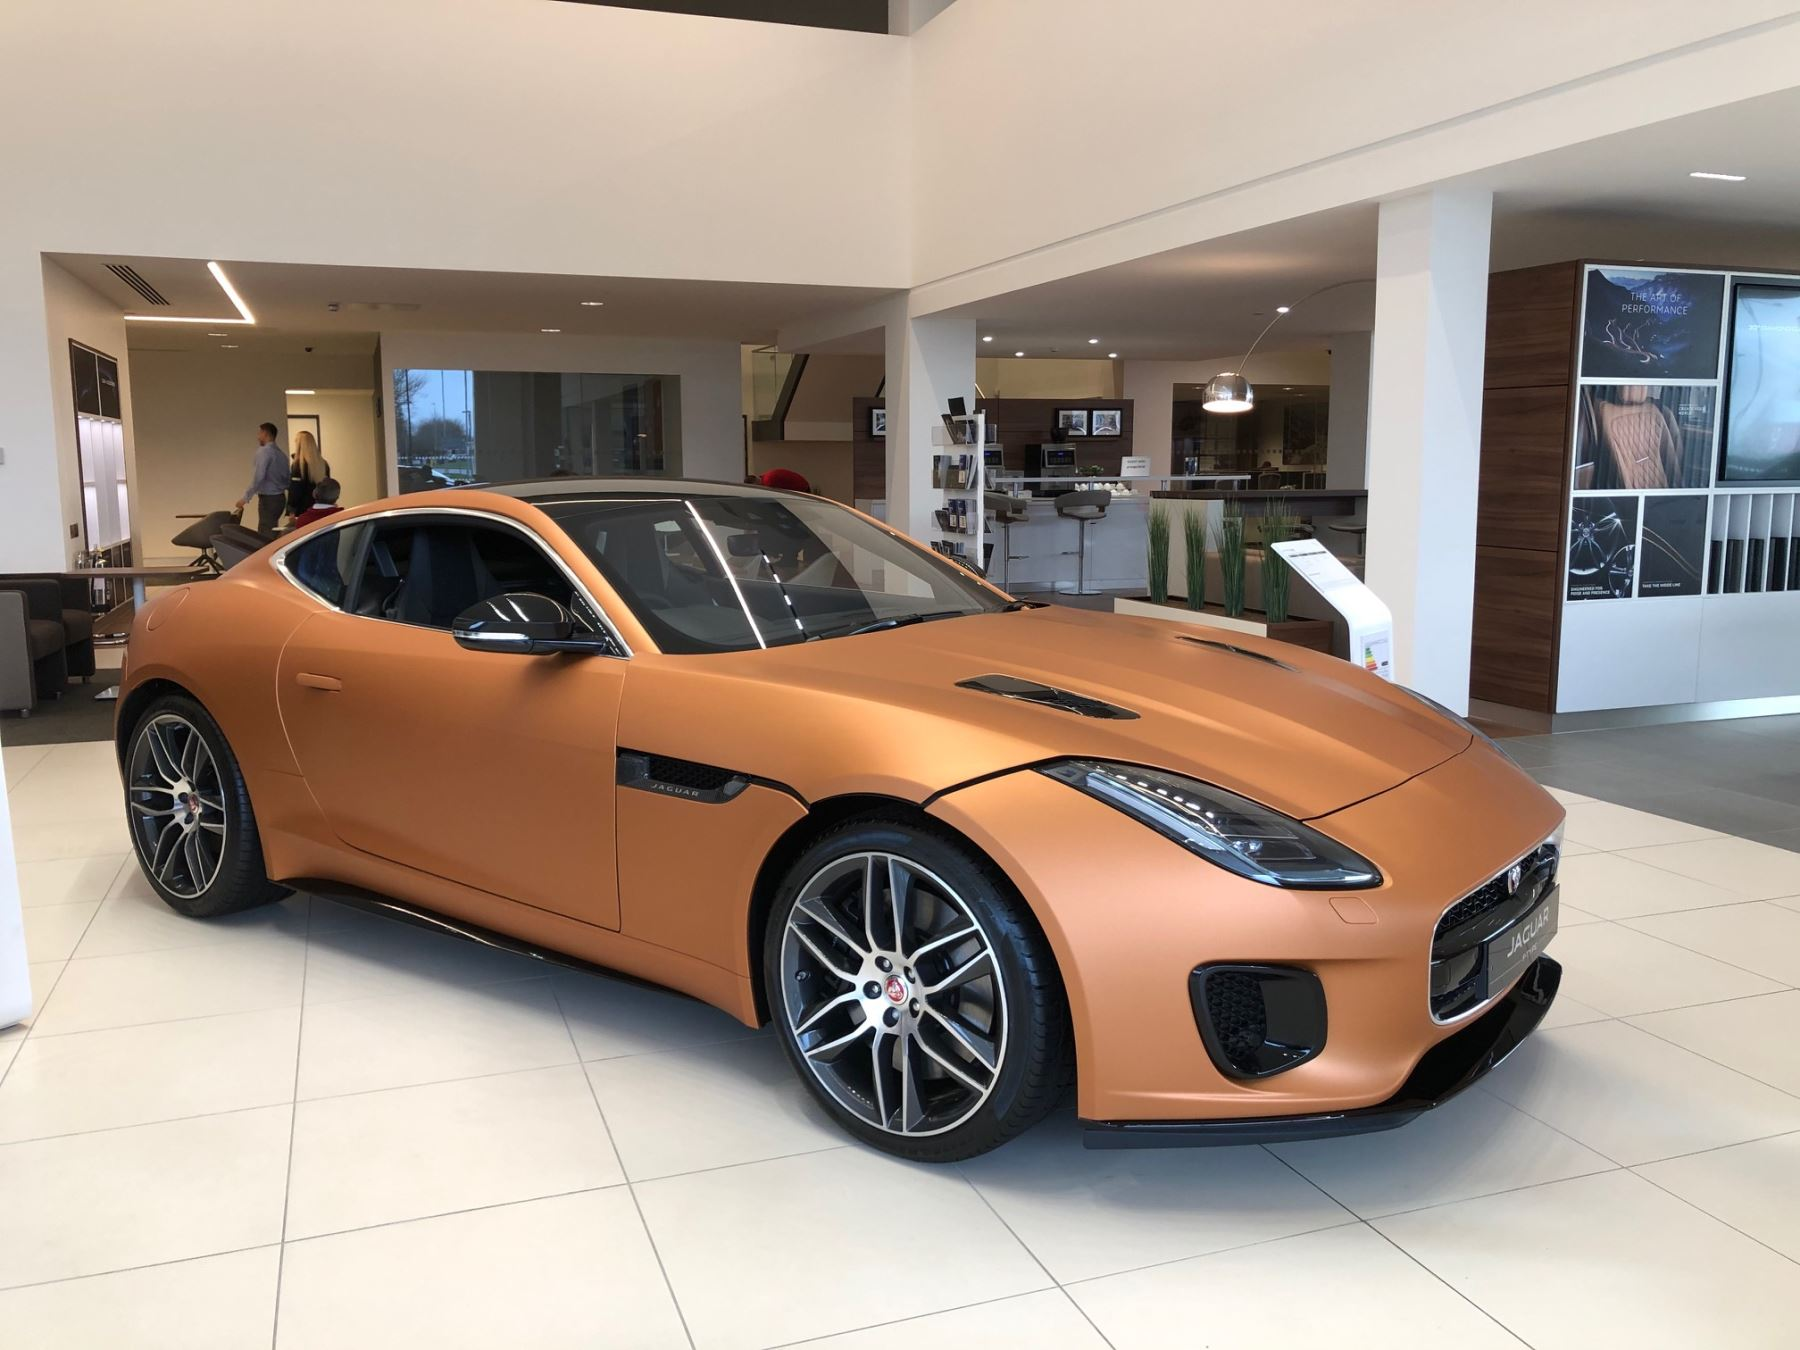 Jaguar F-TYPE 3.0 380 Supercharged V6 R-Dynamic AWD image 5